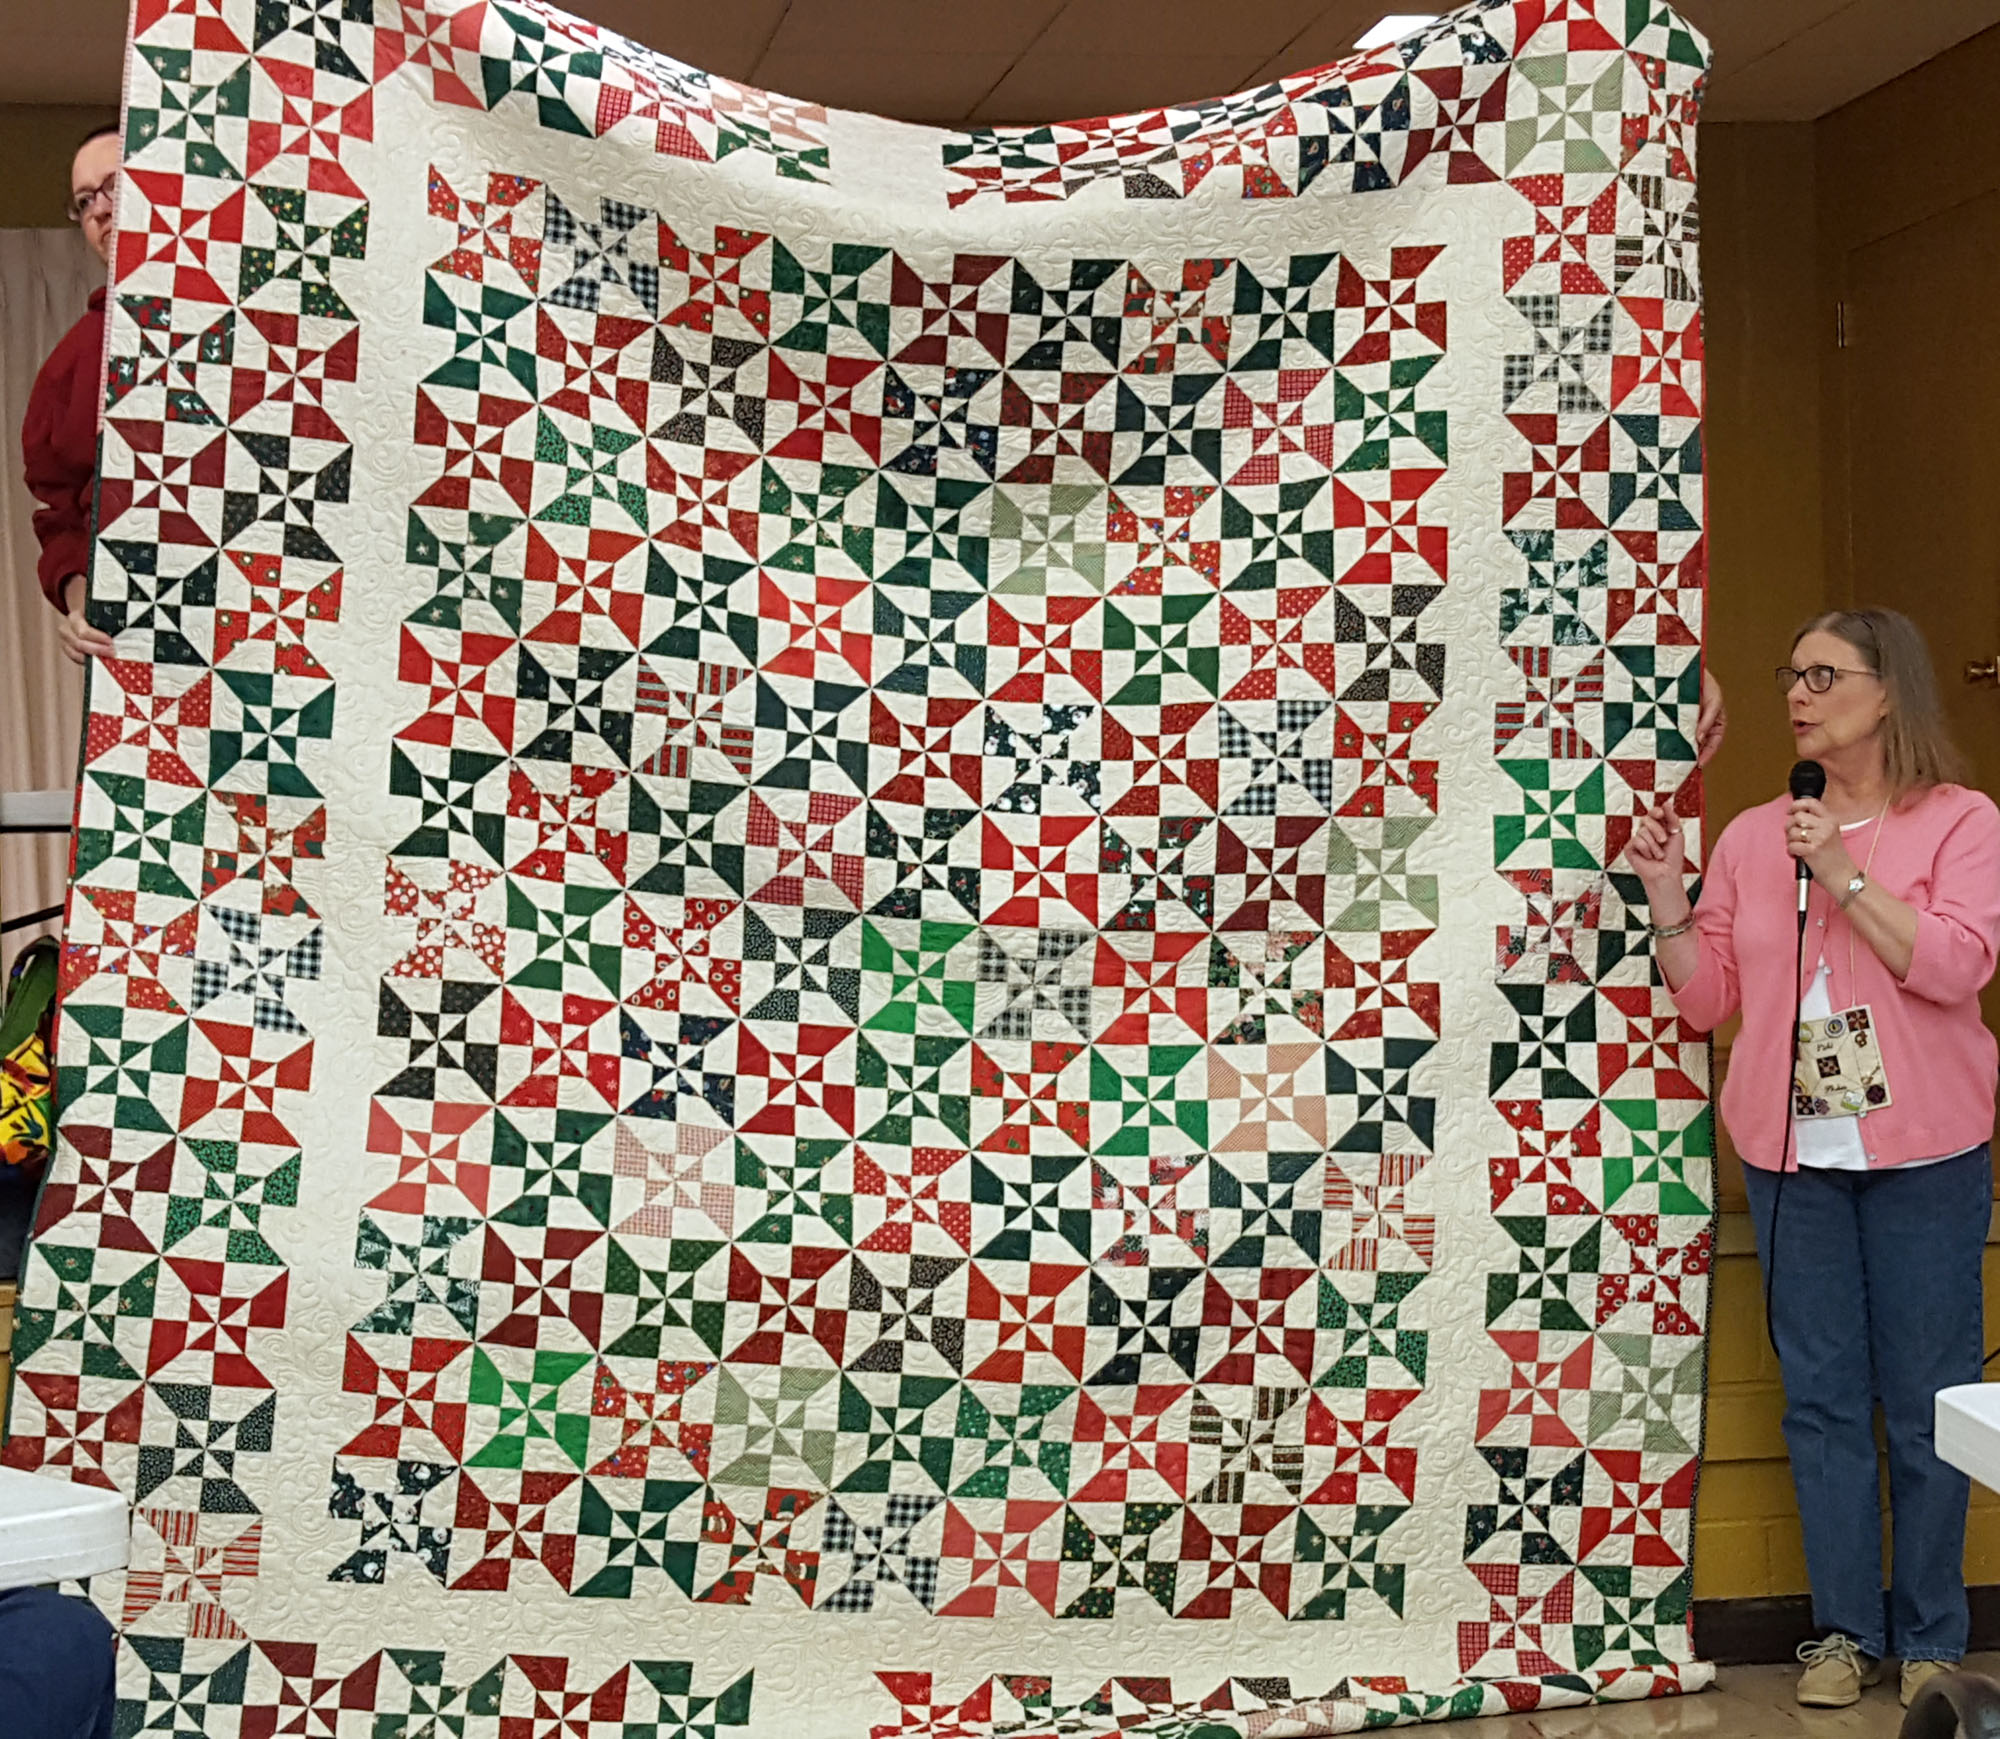 Vicki Phalan - The quilt that kept growing